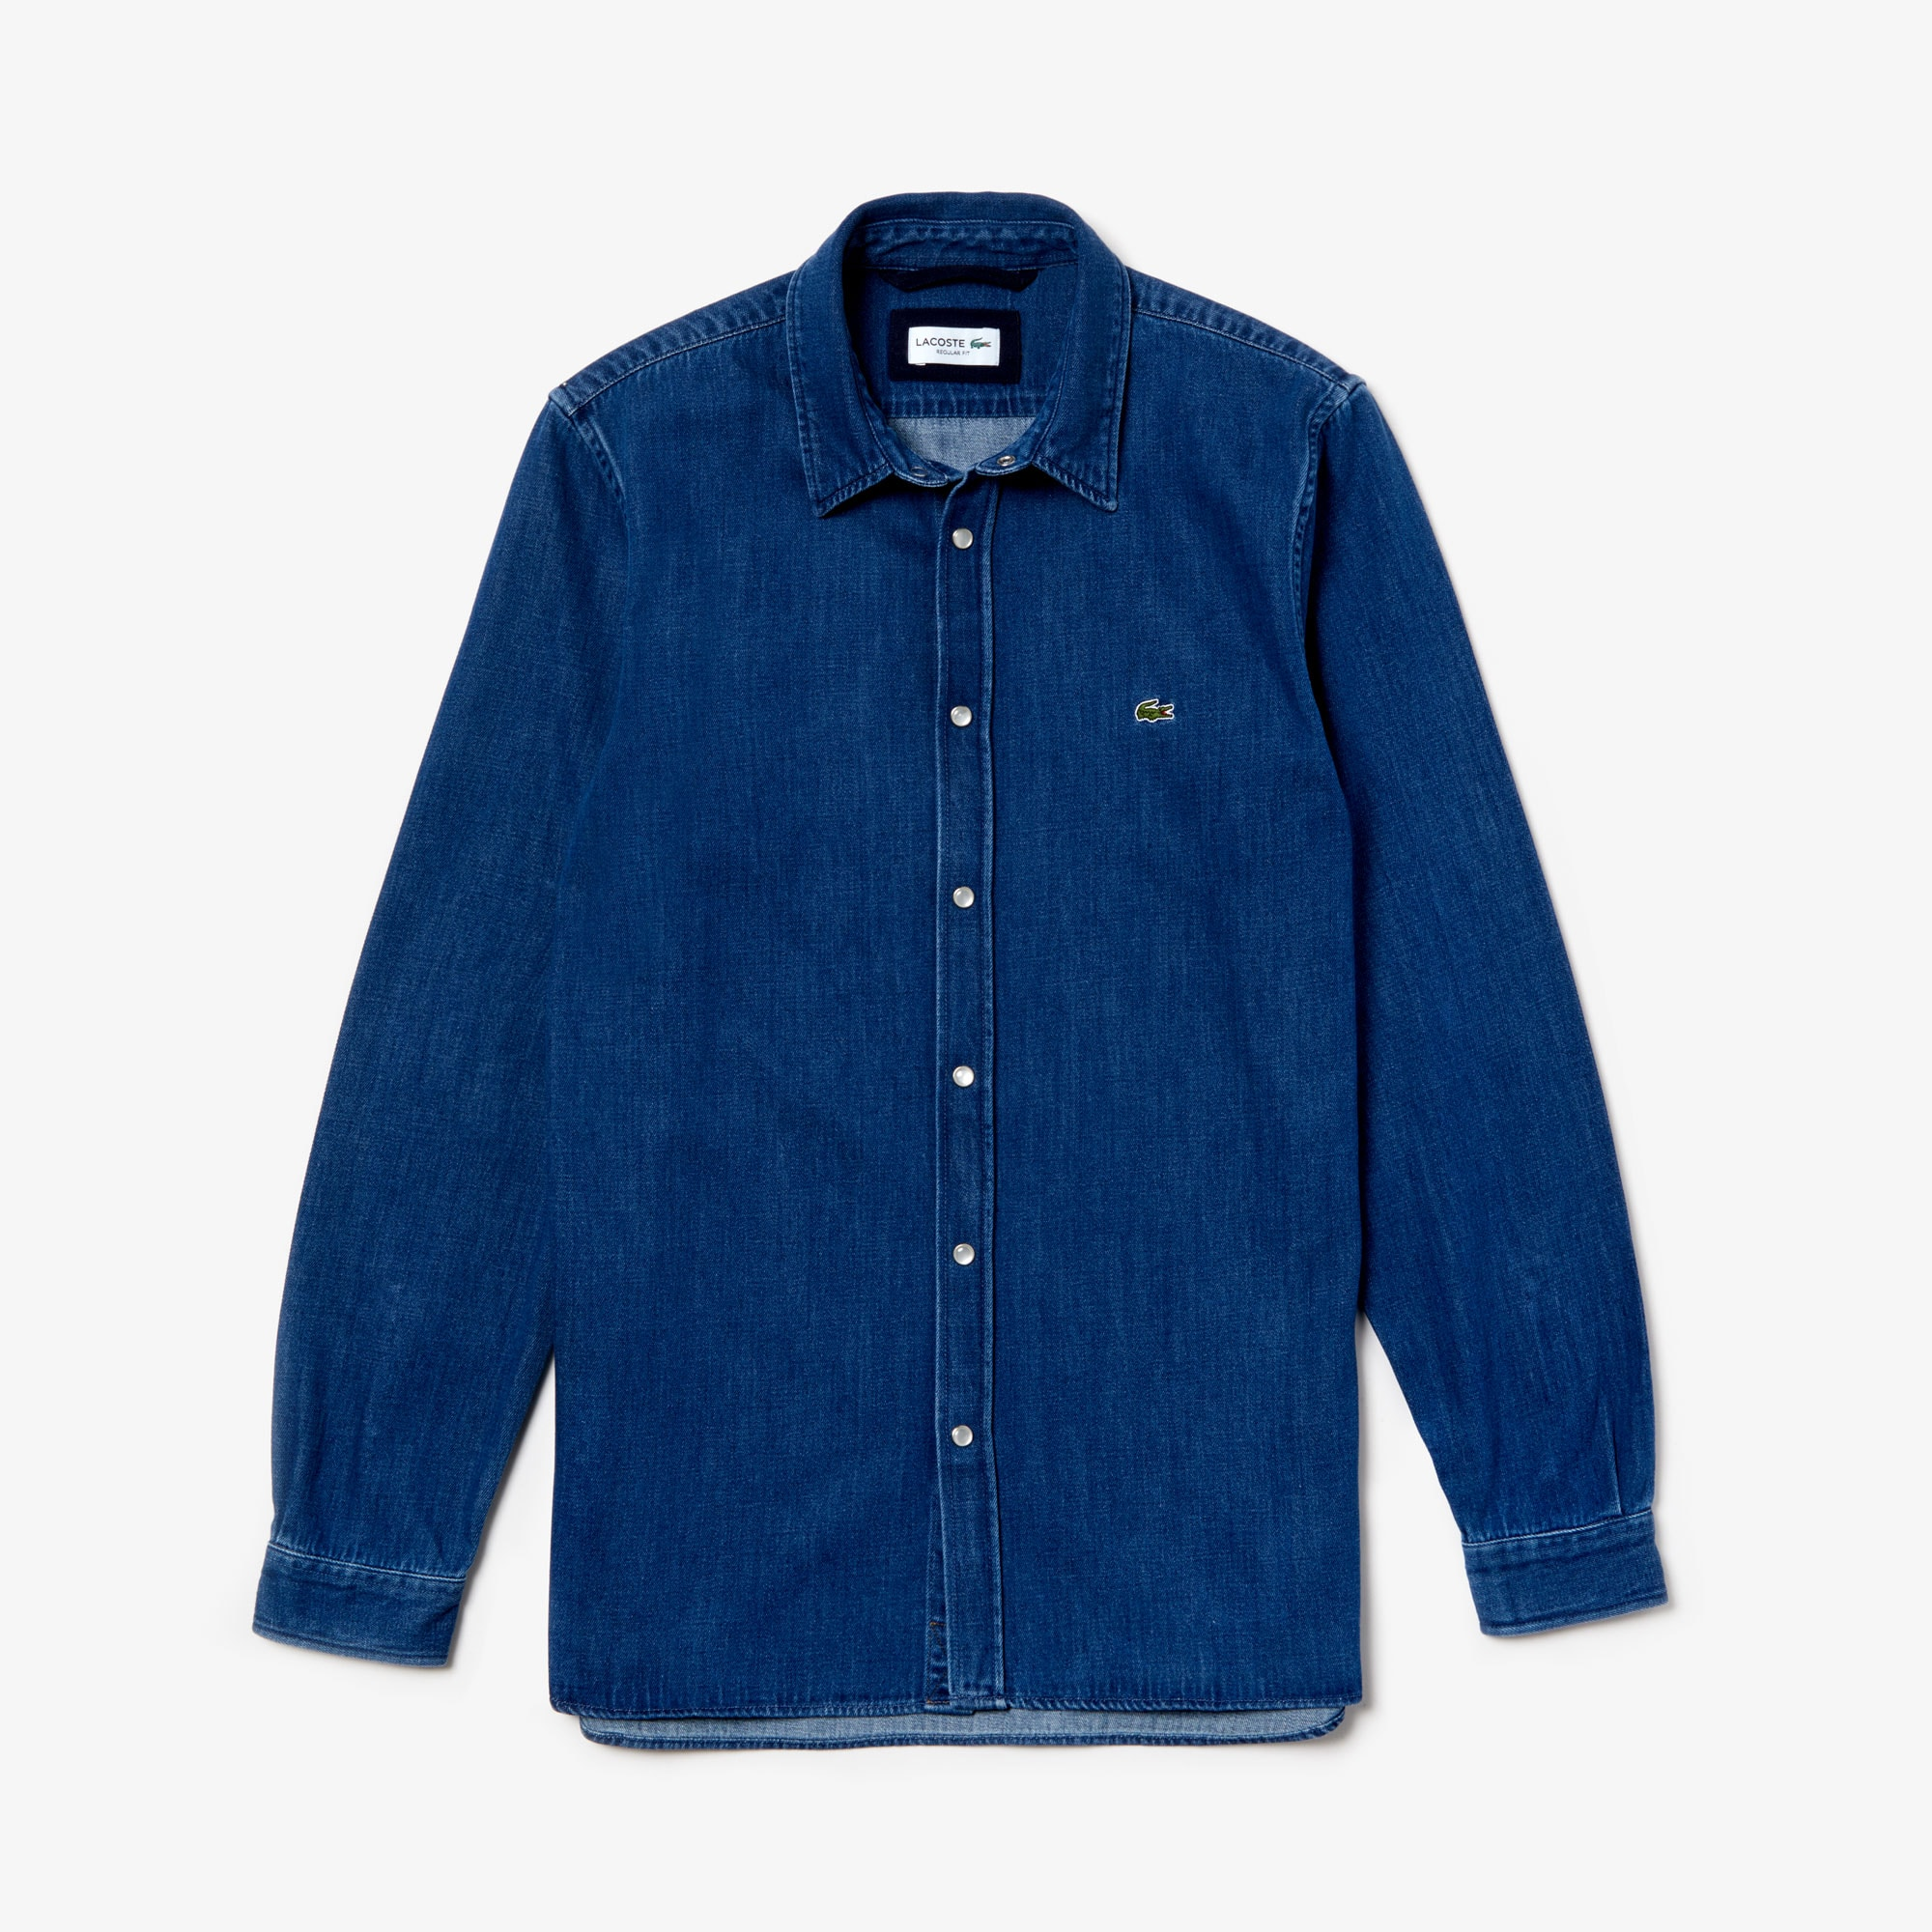 Men's Loose Fit Snap Denim Shirt